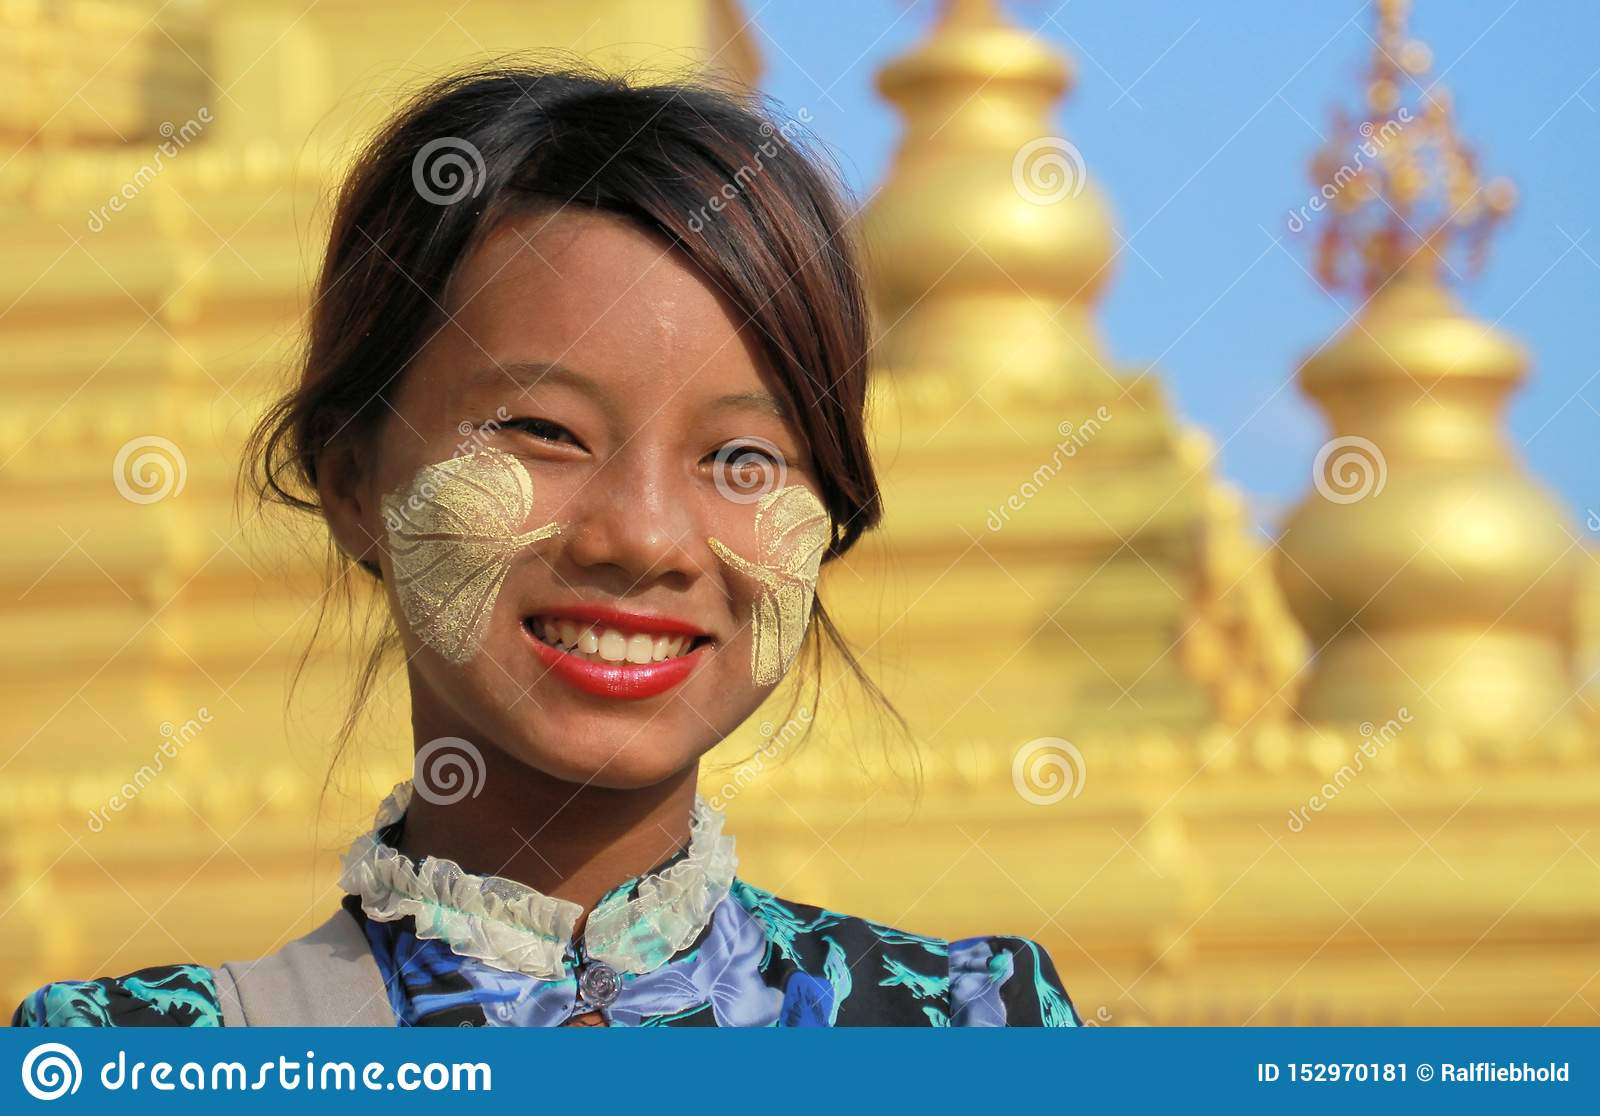 MANDALAY, MYANMAR - DECEMBER 17. 2015: Portrait of a Burmese girl with traditional Thanaka face painting in front of golden Pagoda